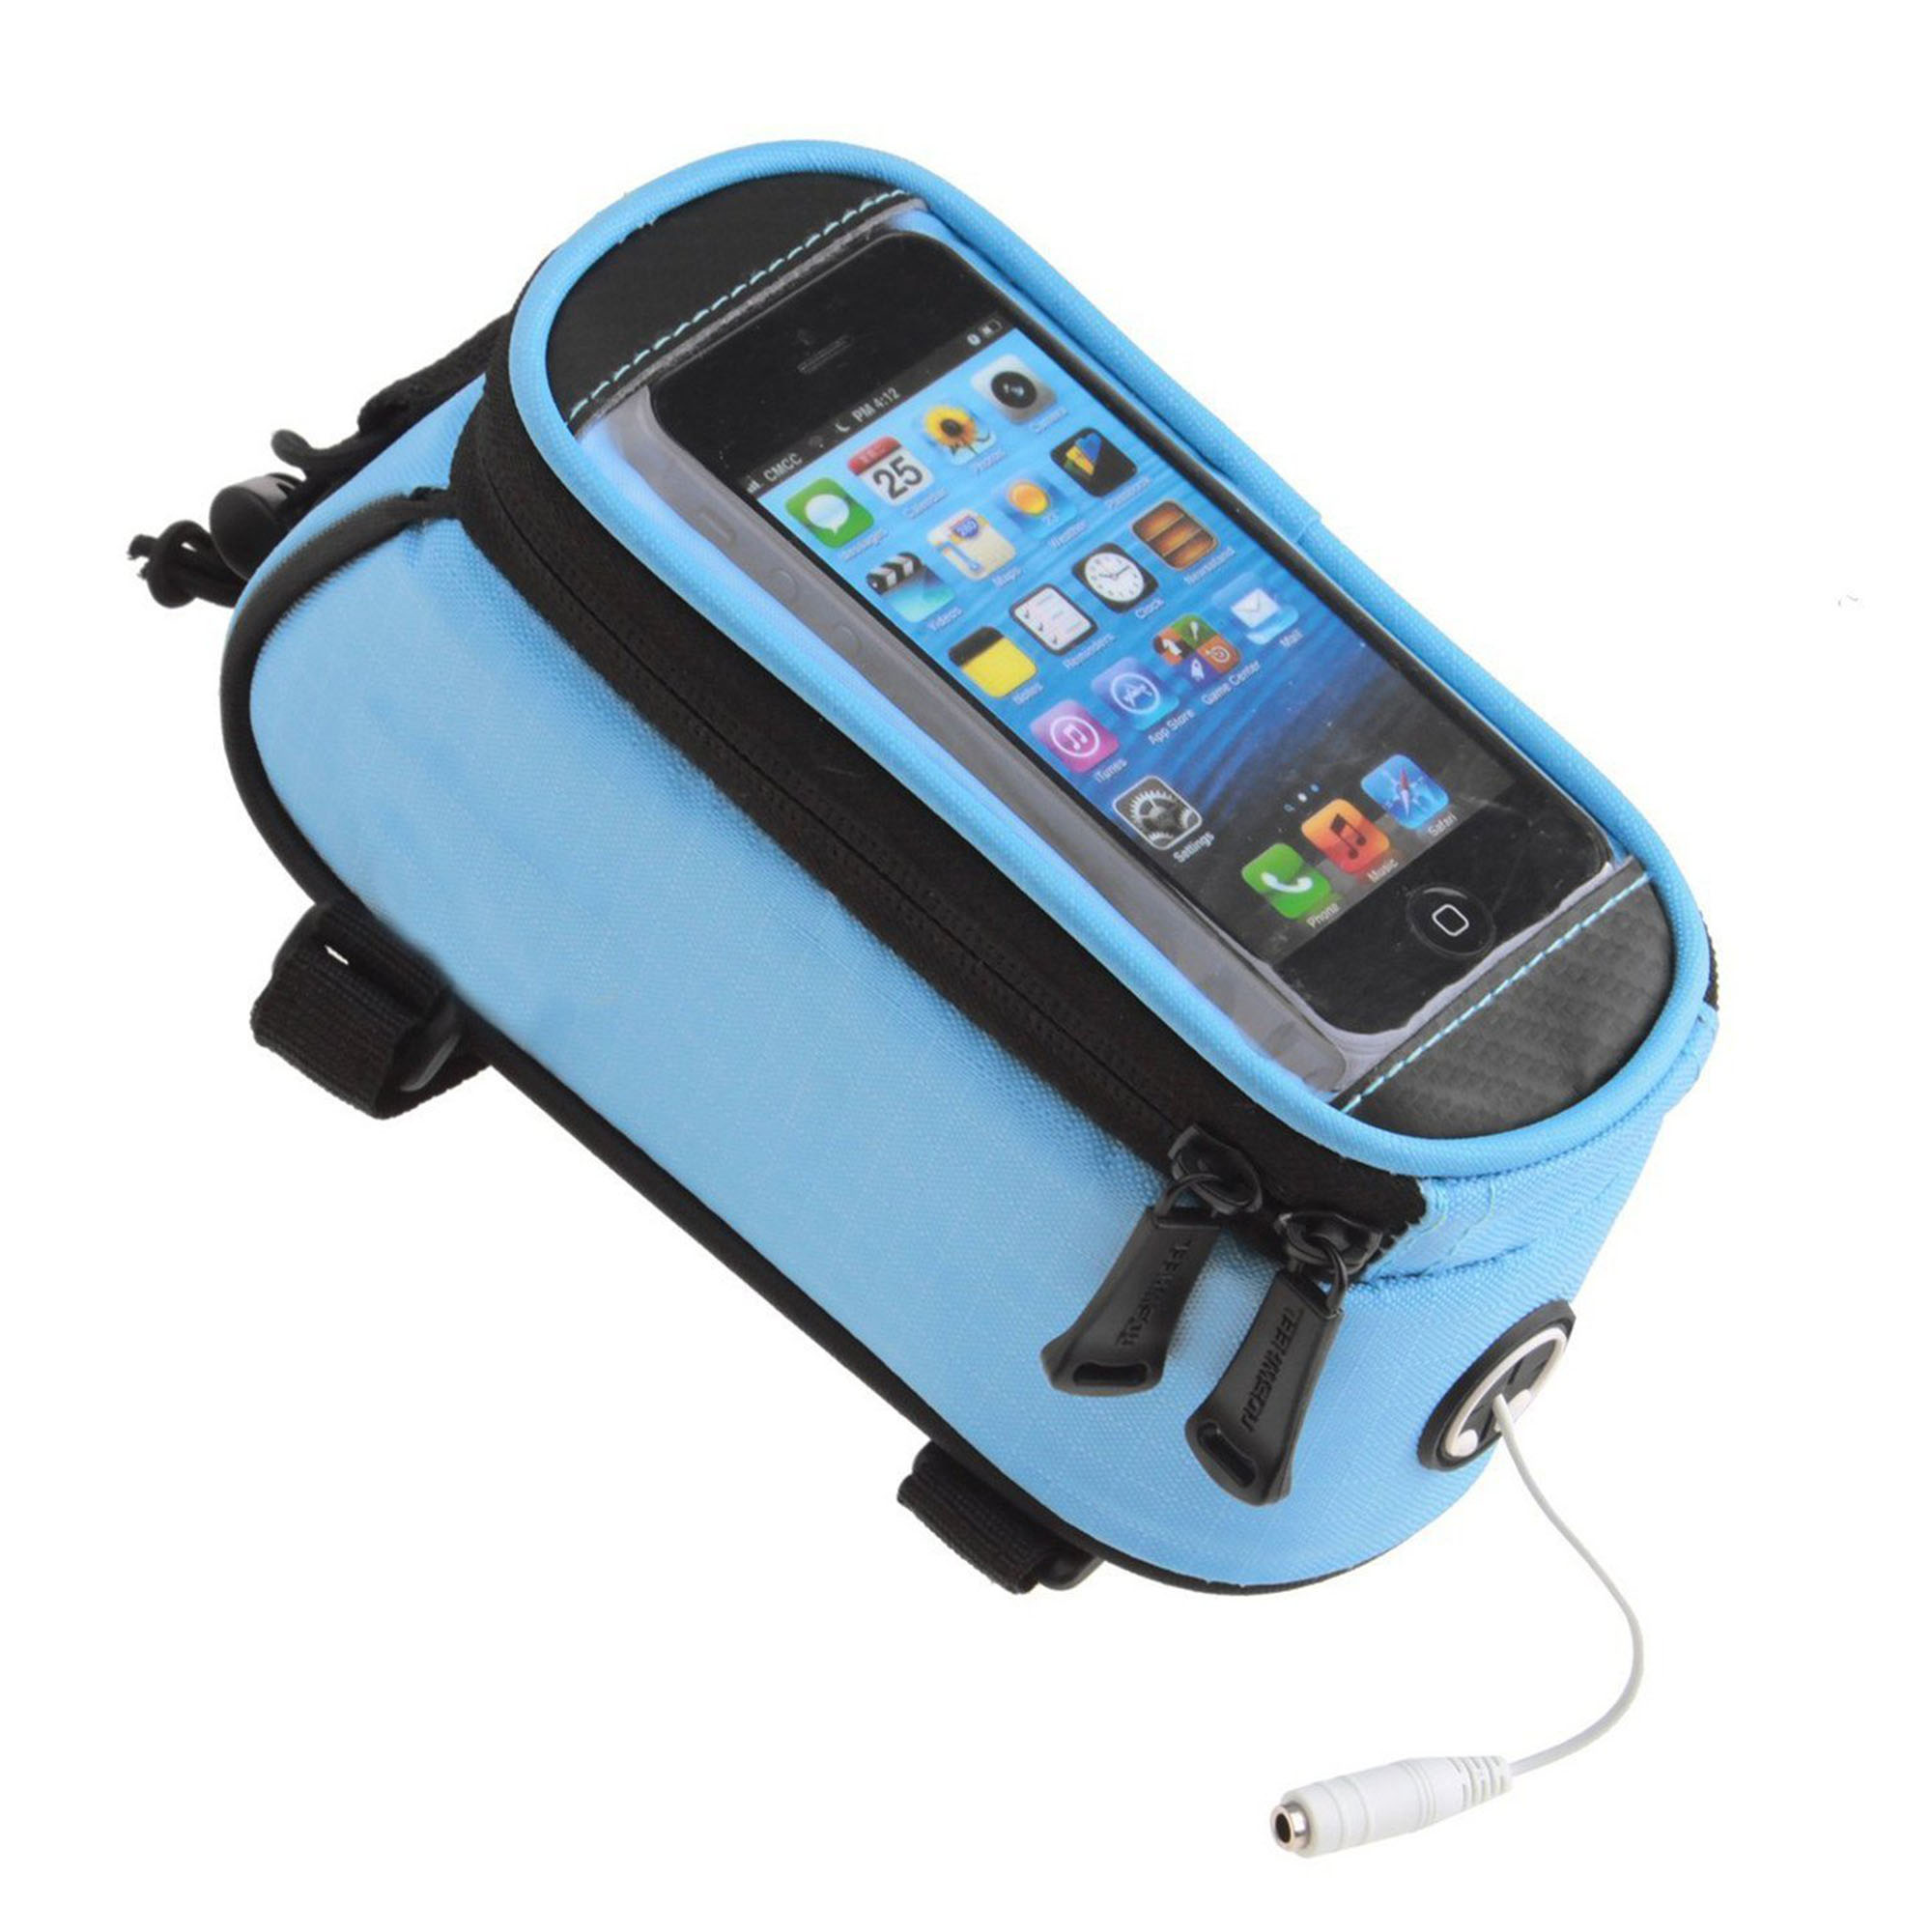 "SehrGo Bike Bicycle Handlebar Frame Pannier Front Top Tube Bag Pack Rack X Large Waterproof for iPhone Samsung Mobile Phone (Skyblue, For 4.8"" Mobile Phone)"